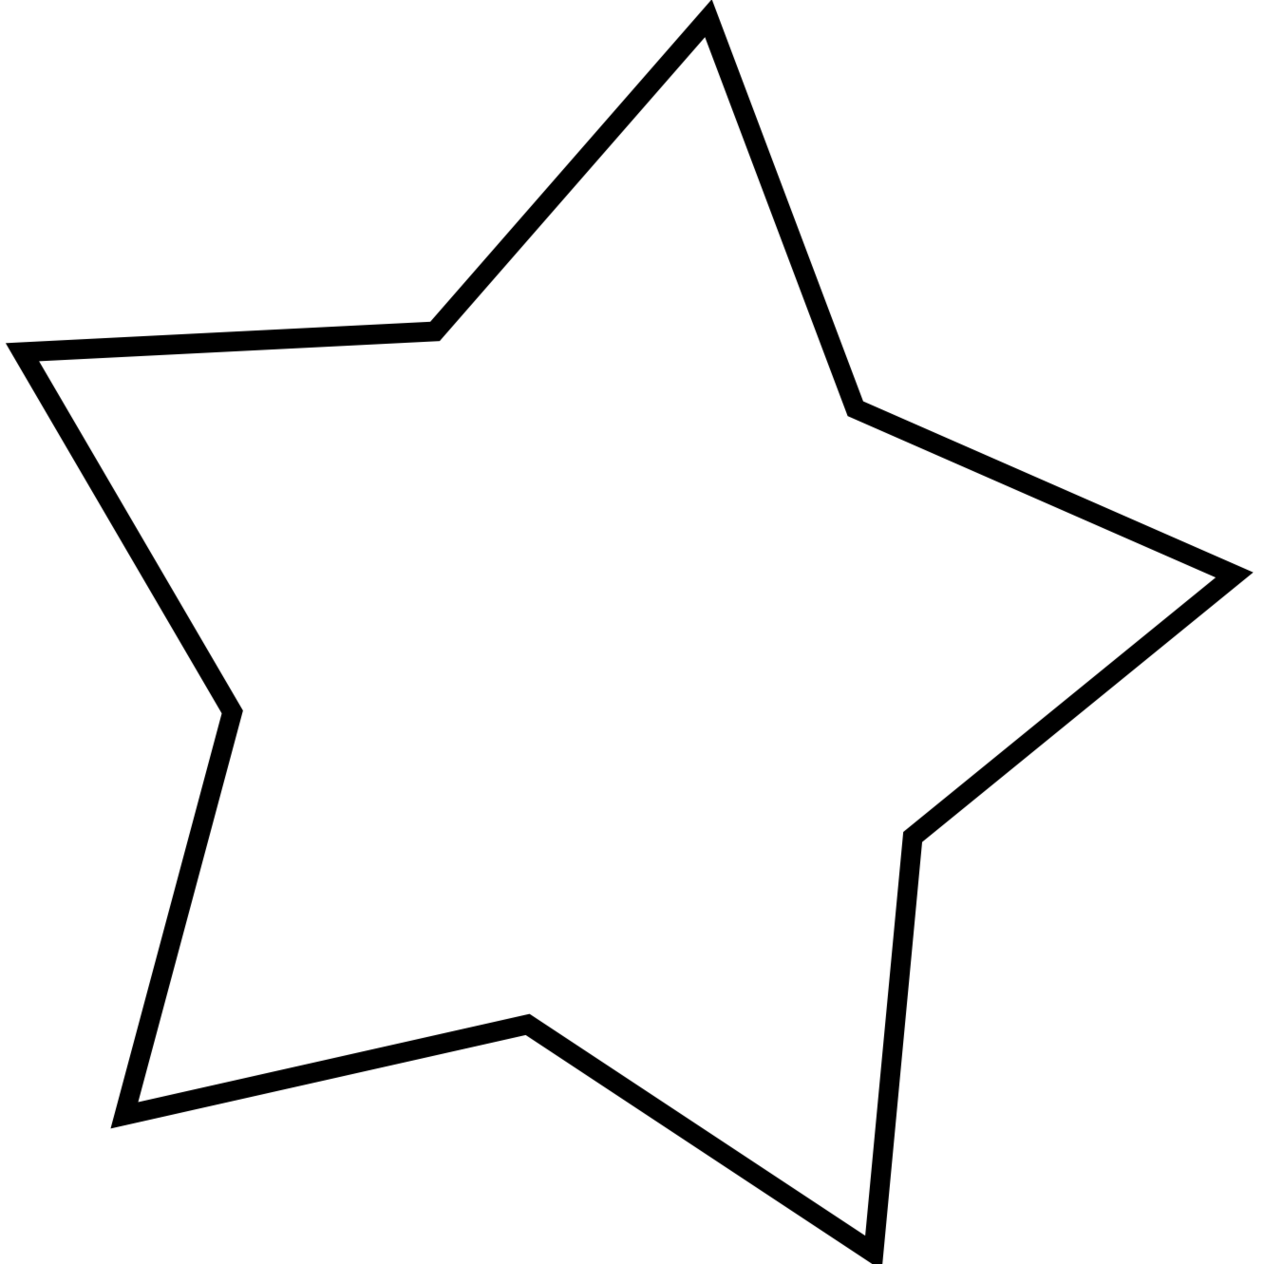 1264x1264 Star Clipart Black And White